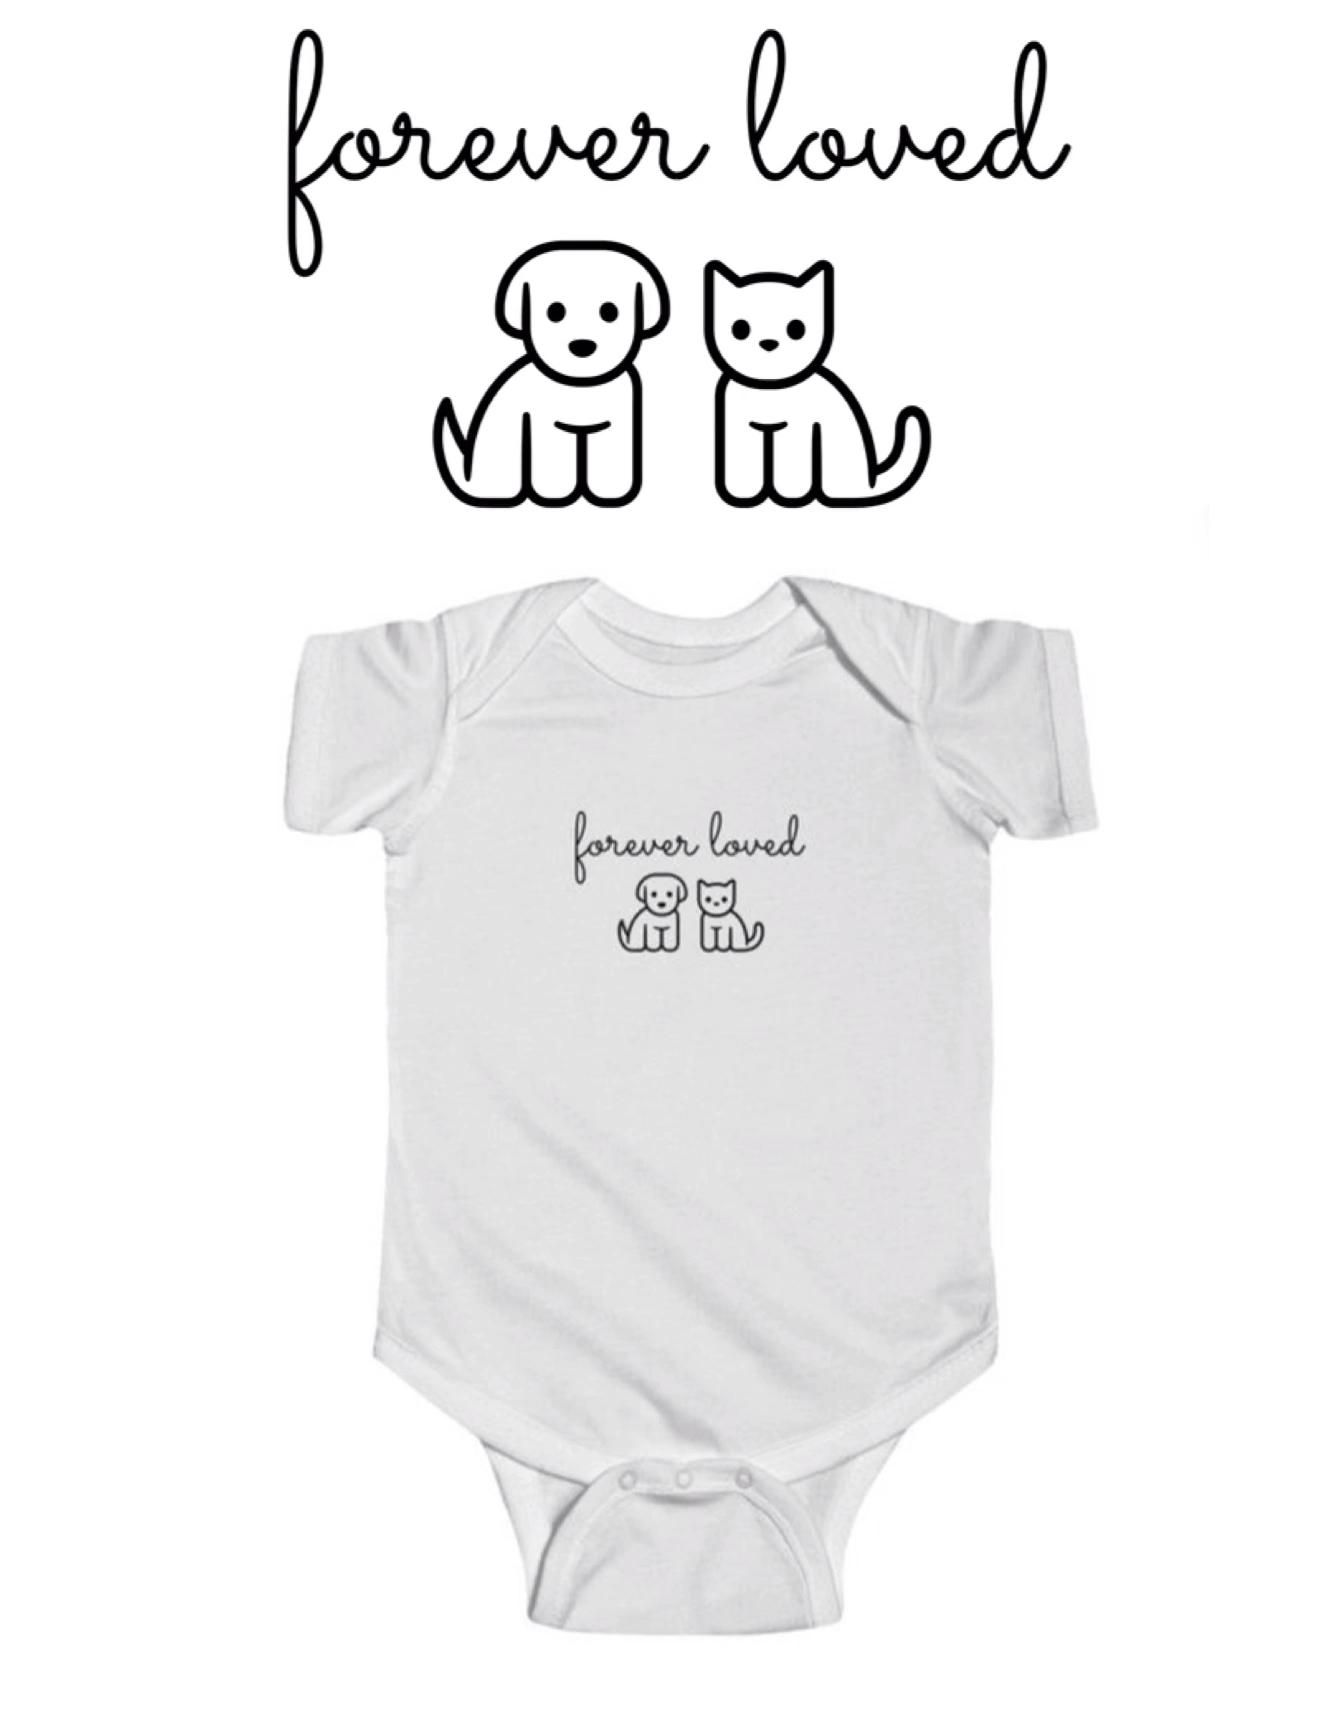 Puppy Kitten Onesie Puppy Onesie Kitten Onesie Cute Etsy Video Video In 2020 Newborn Baby Girl Outfit Toddler Baby Boy Style Newborn Baby Boy Outfit